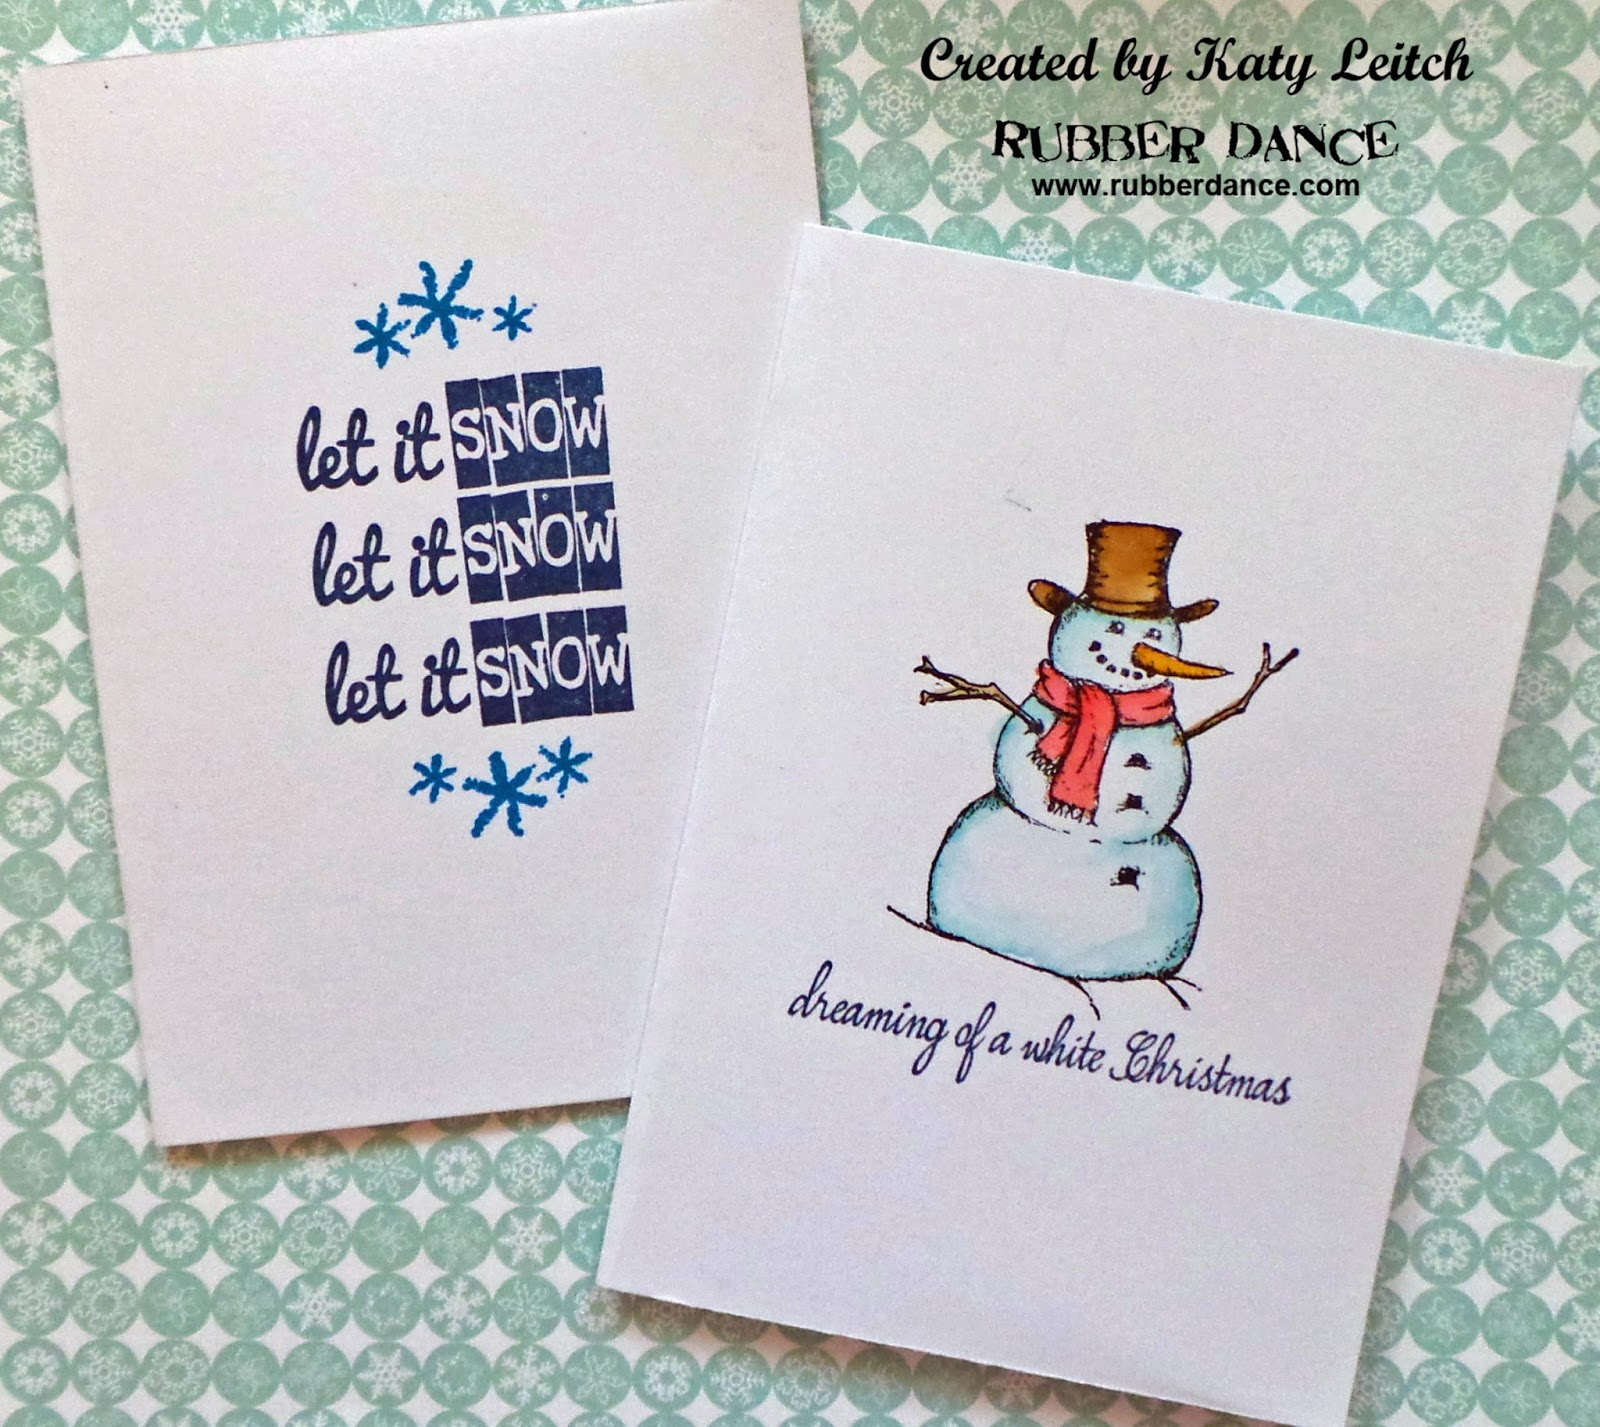 Rubber Dance Blog 5 Minute Christmas Cards By Katy